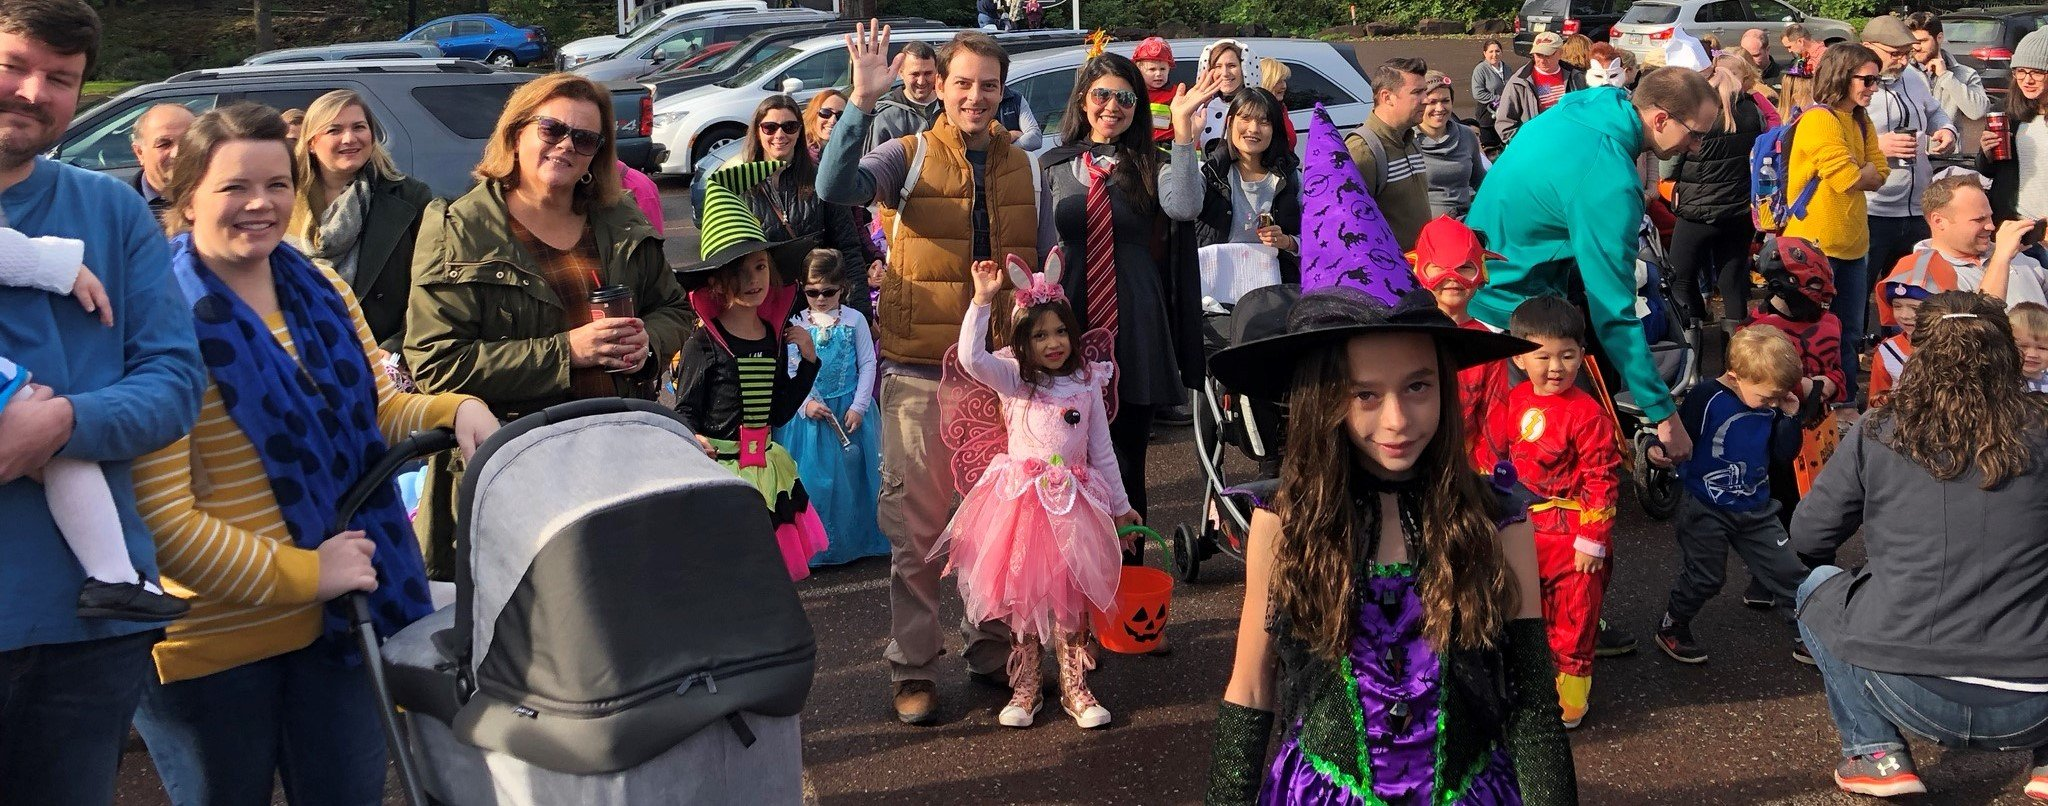 Pennsburg Halloween Parade 2020 Events   Floral and Hardy of Skippack